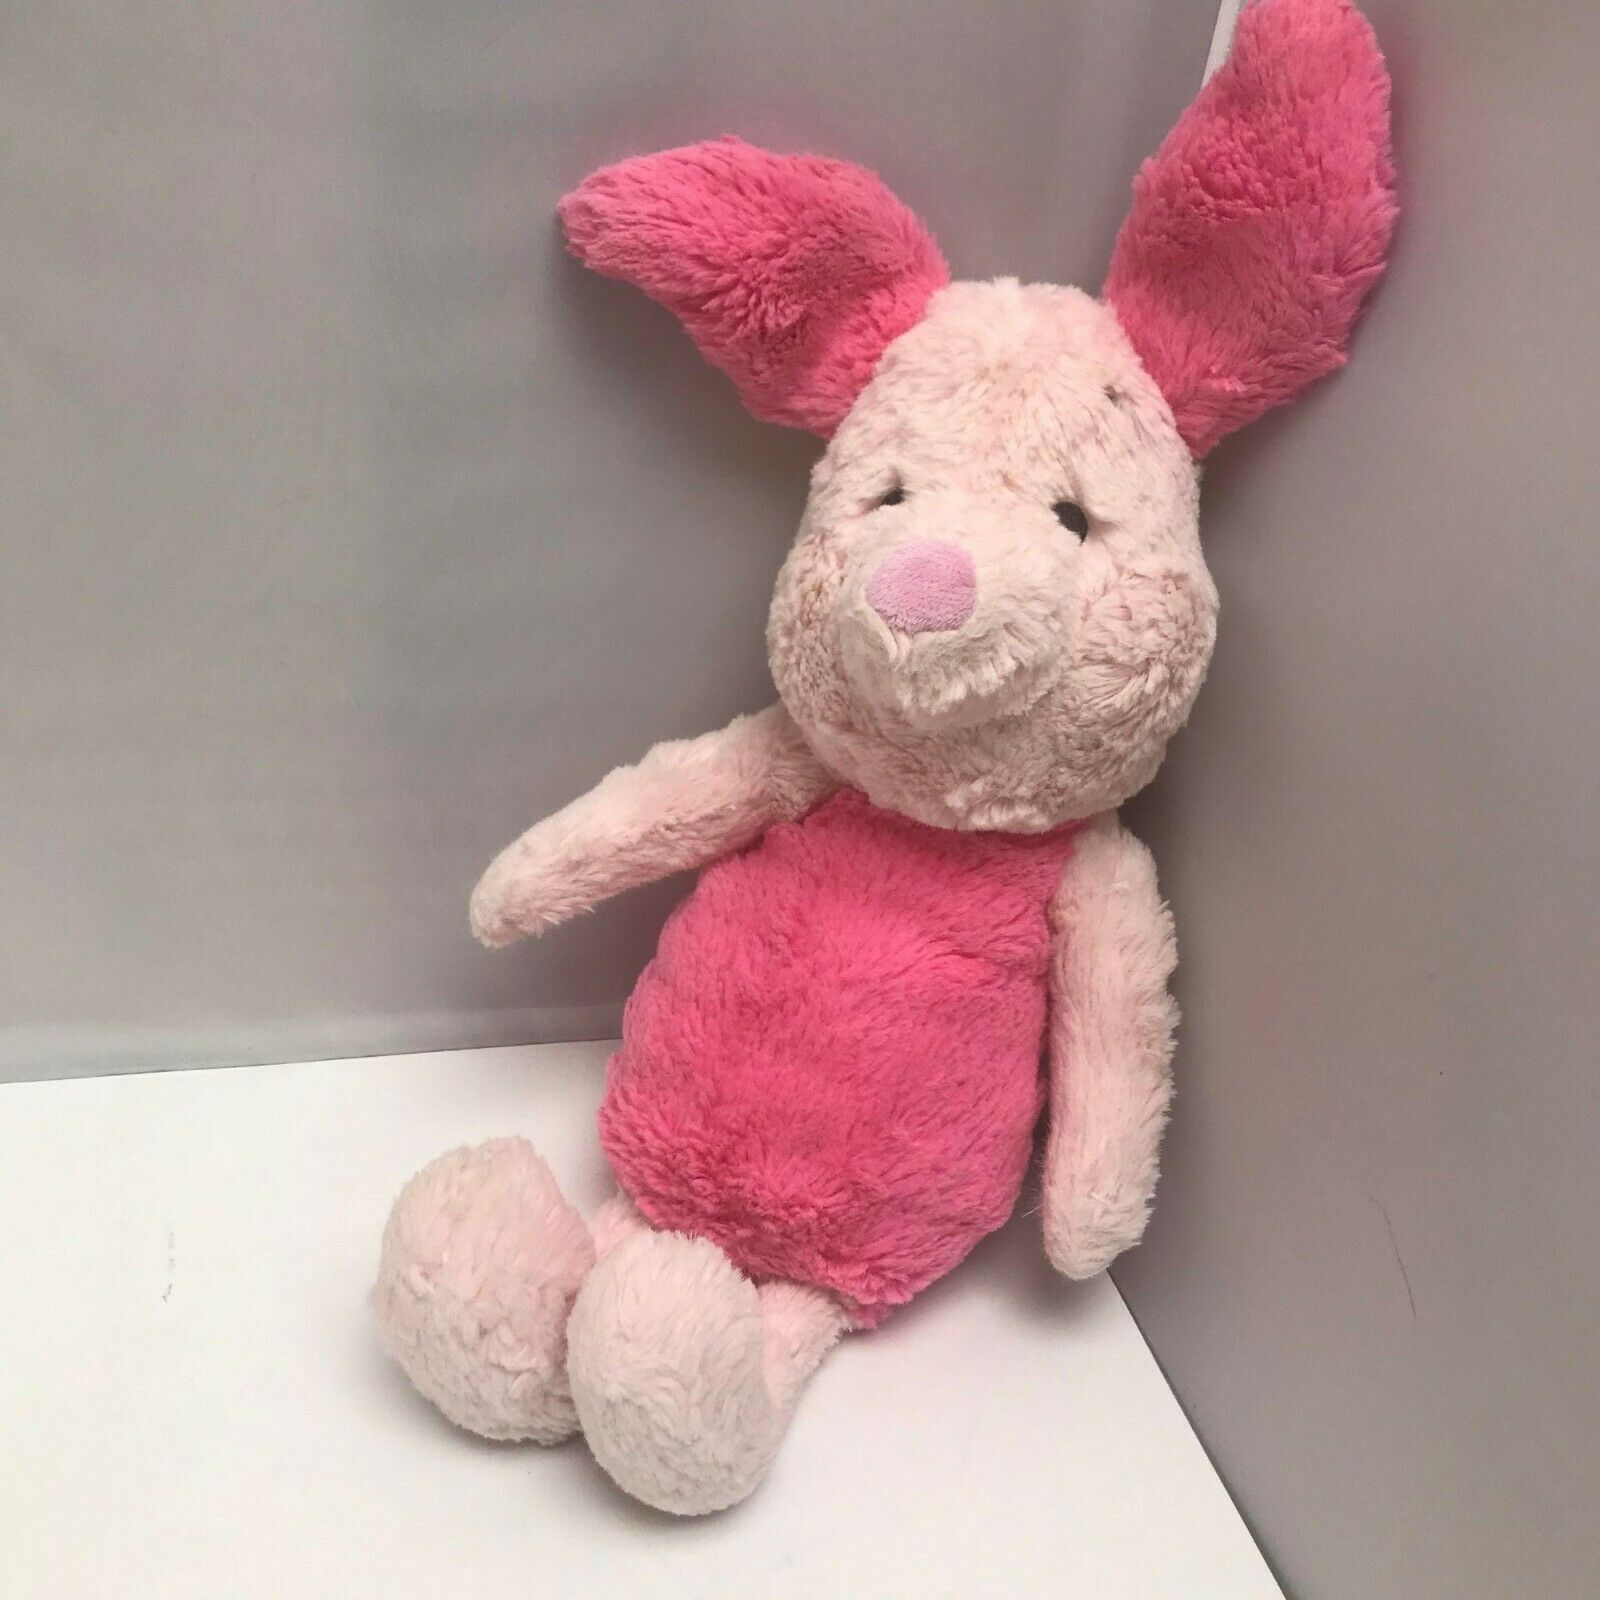 Primary image for Gund Disney Winnie the Pooh Piglet Soft Pink Plush Stuffed Animal 12″